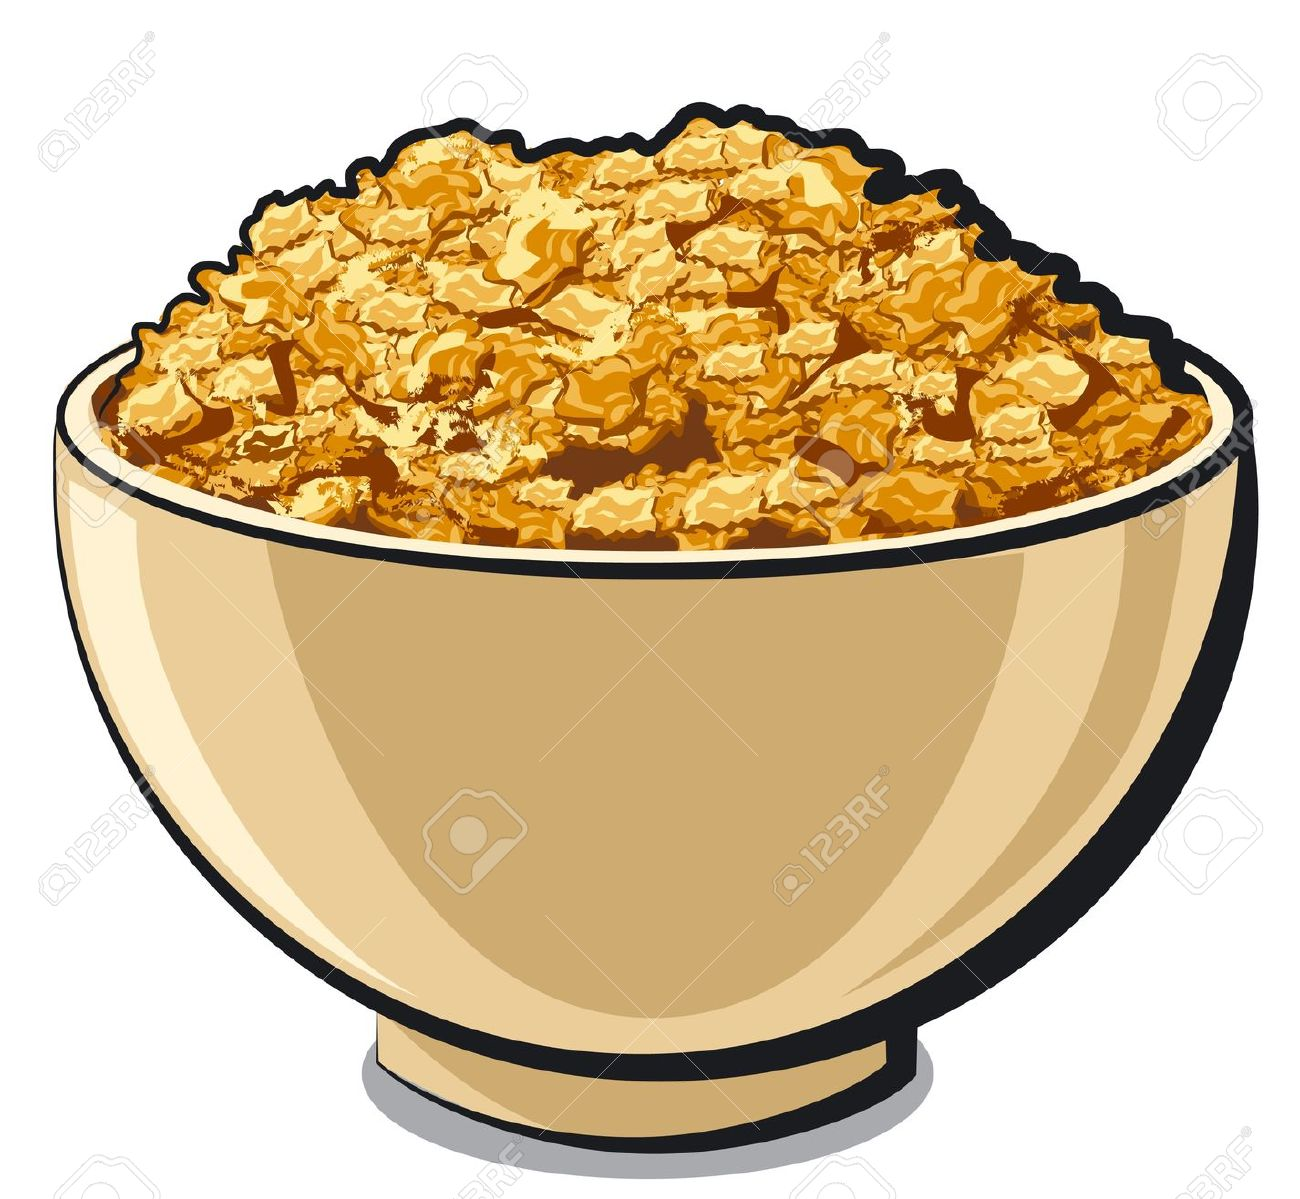 cereal bowl: tasty cornflakes .